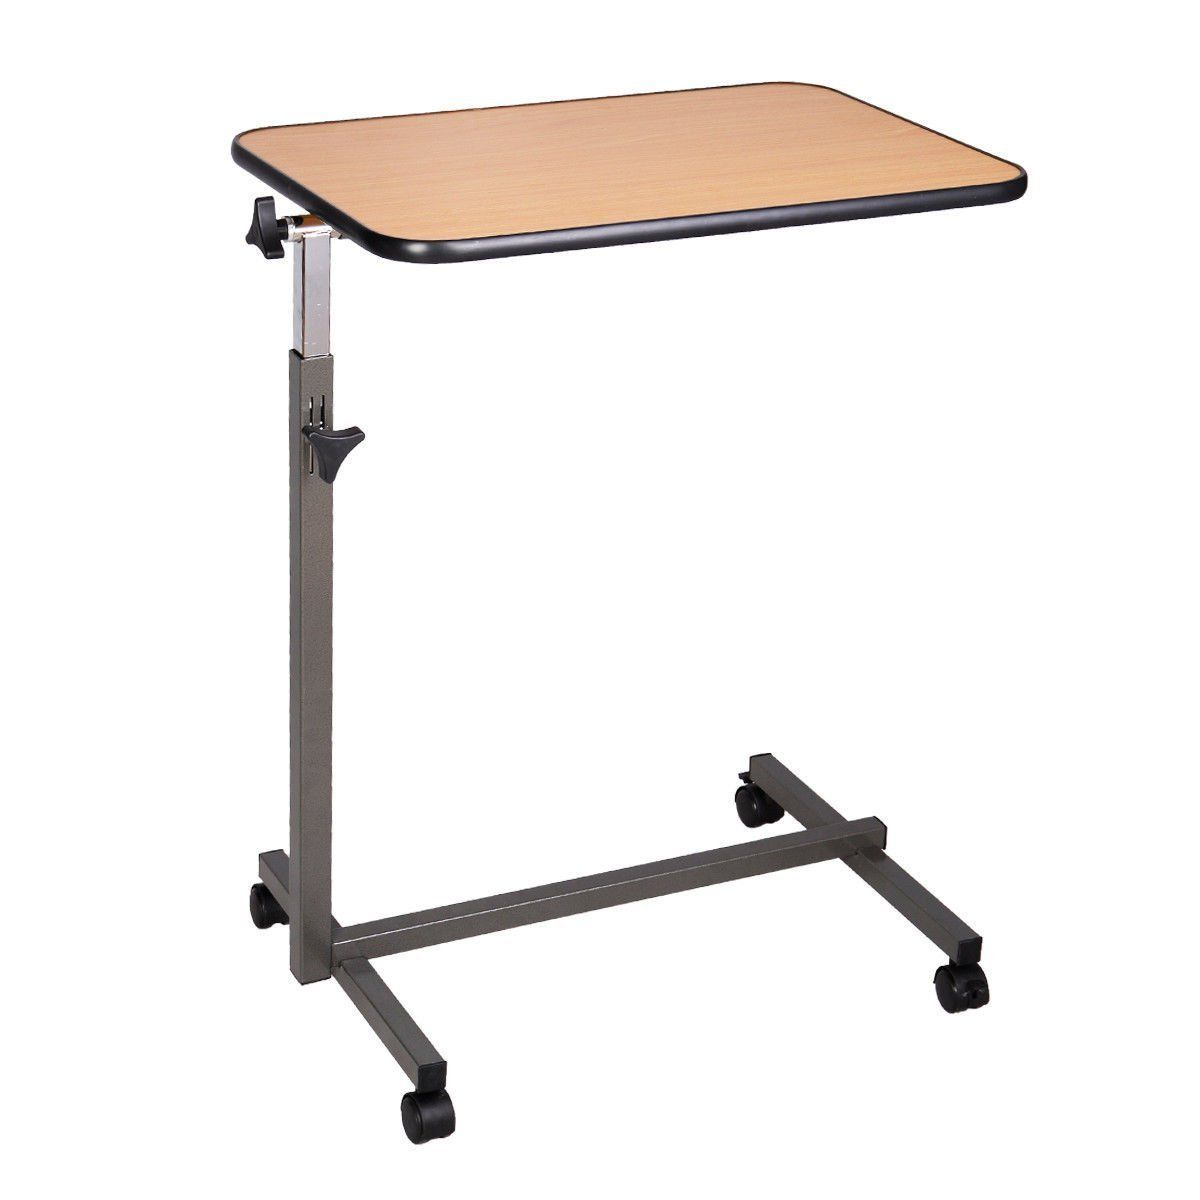 Rolling bed tray table - Amazon Com Laptop Food Tray Overbed Table Rolling Desk Hospital Over Bed With Tilting